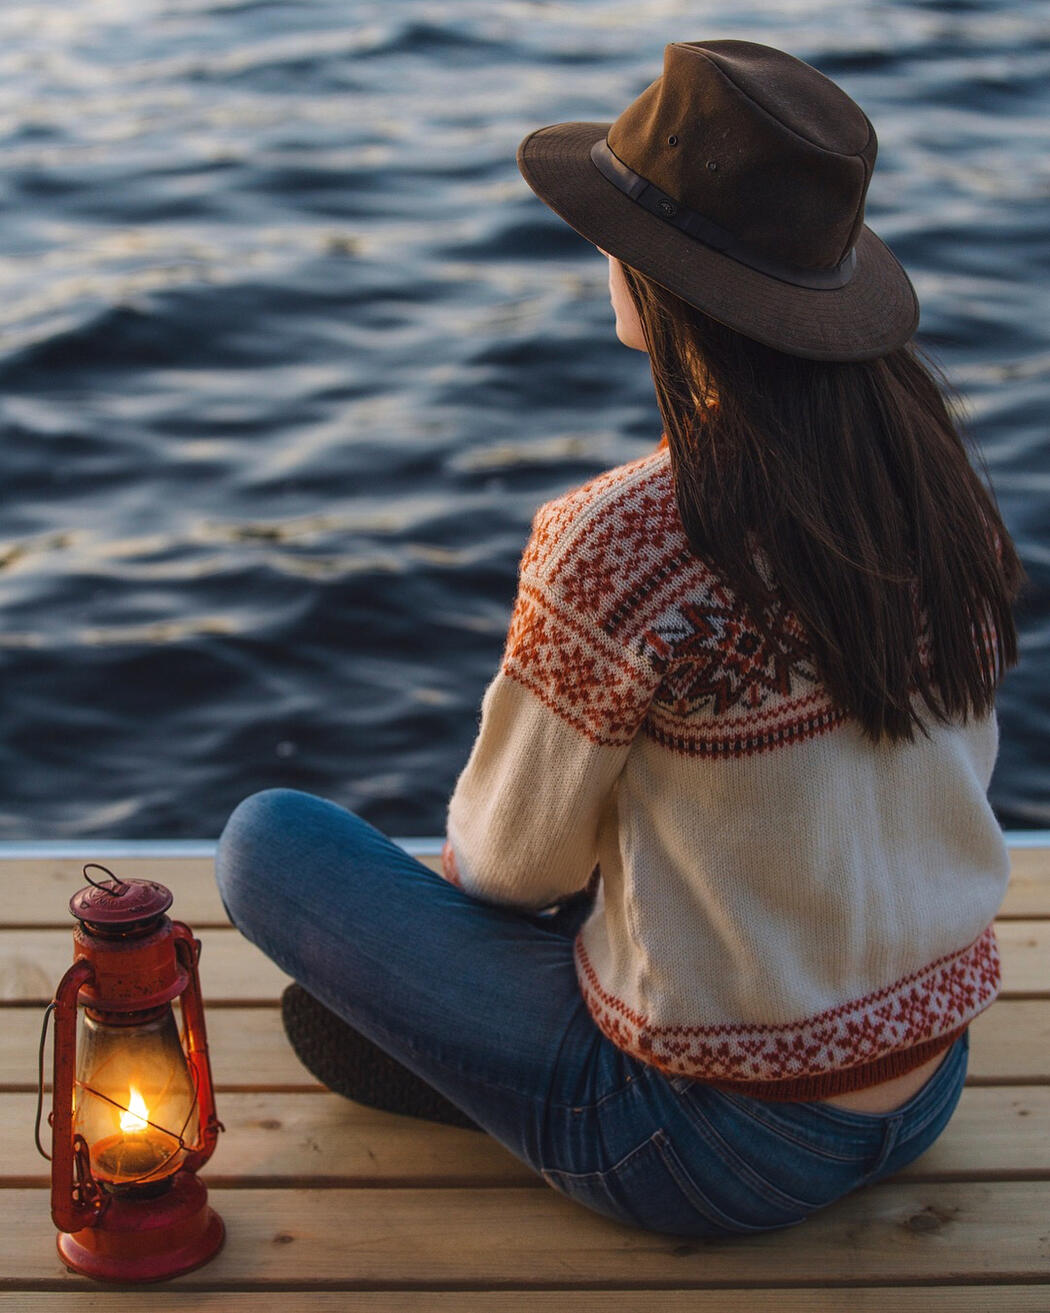 Young woman  with a brimmed hat sitting on a dock beside an old-fashioned lantern.